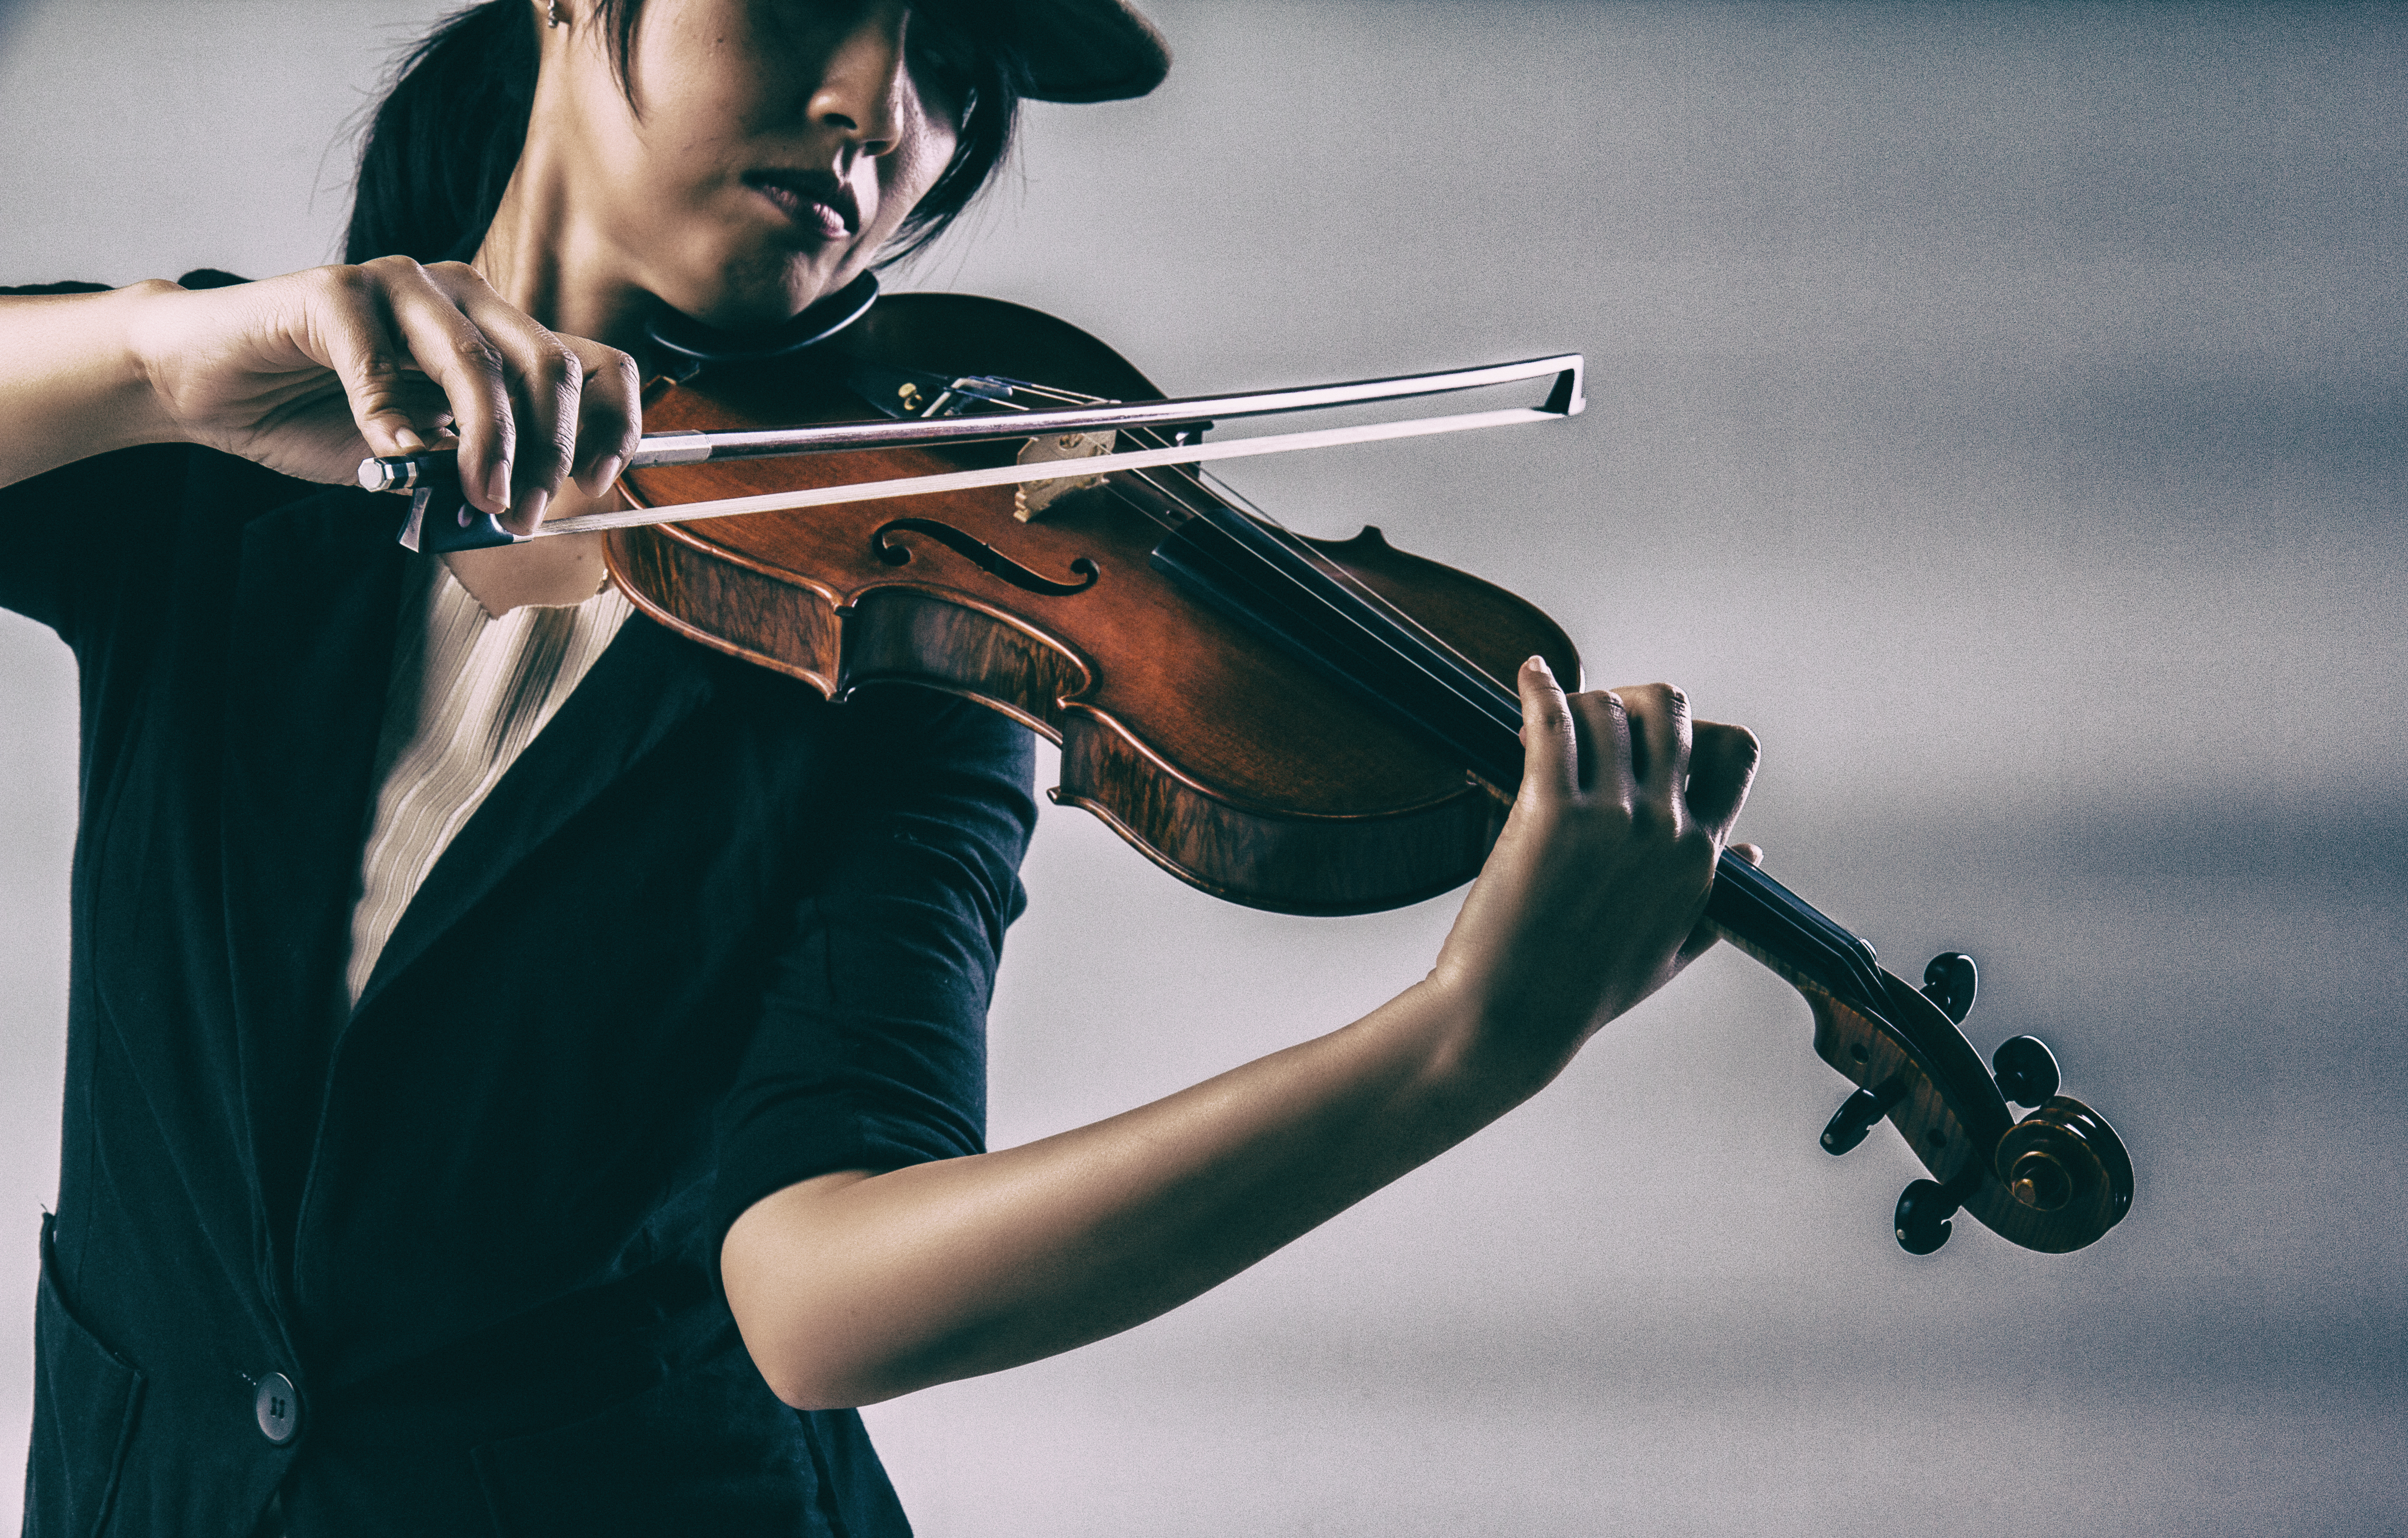 The Total Violinist